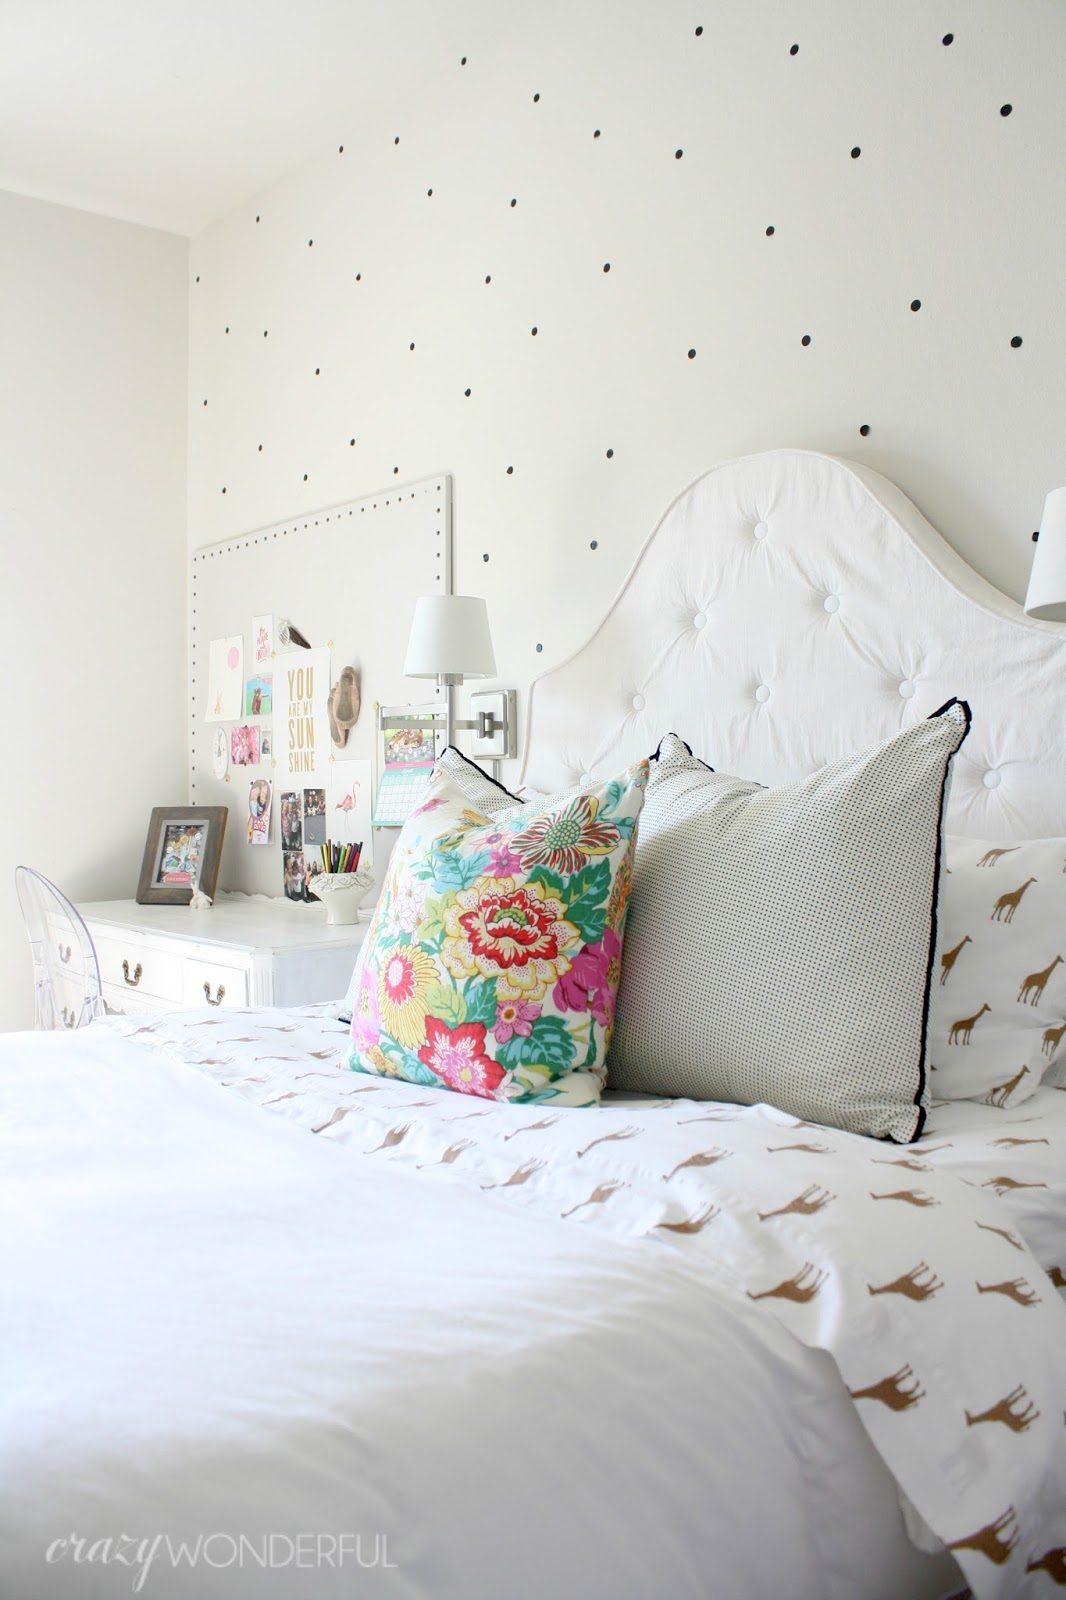 Izzy 39 s bedroom crazy wonderful - The year of the wonderful bedroom ...